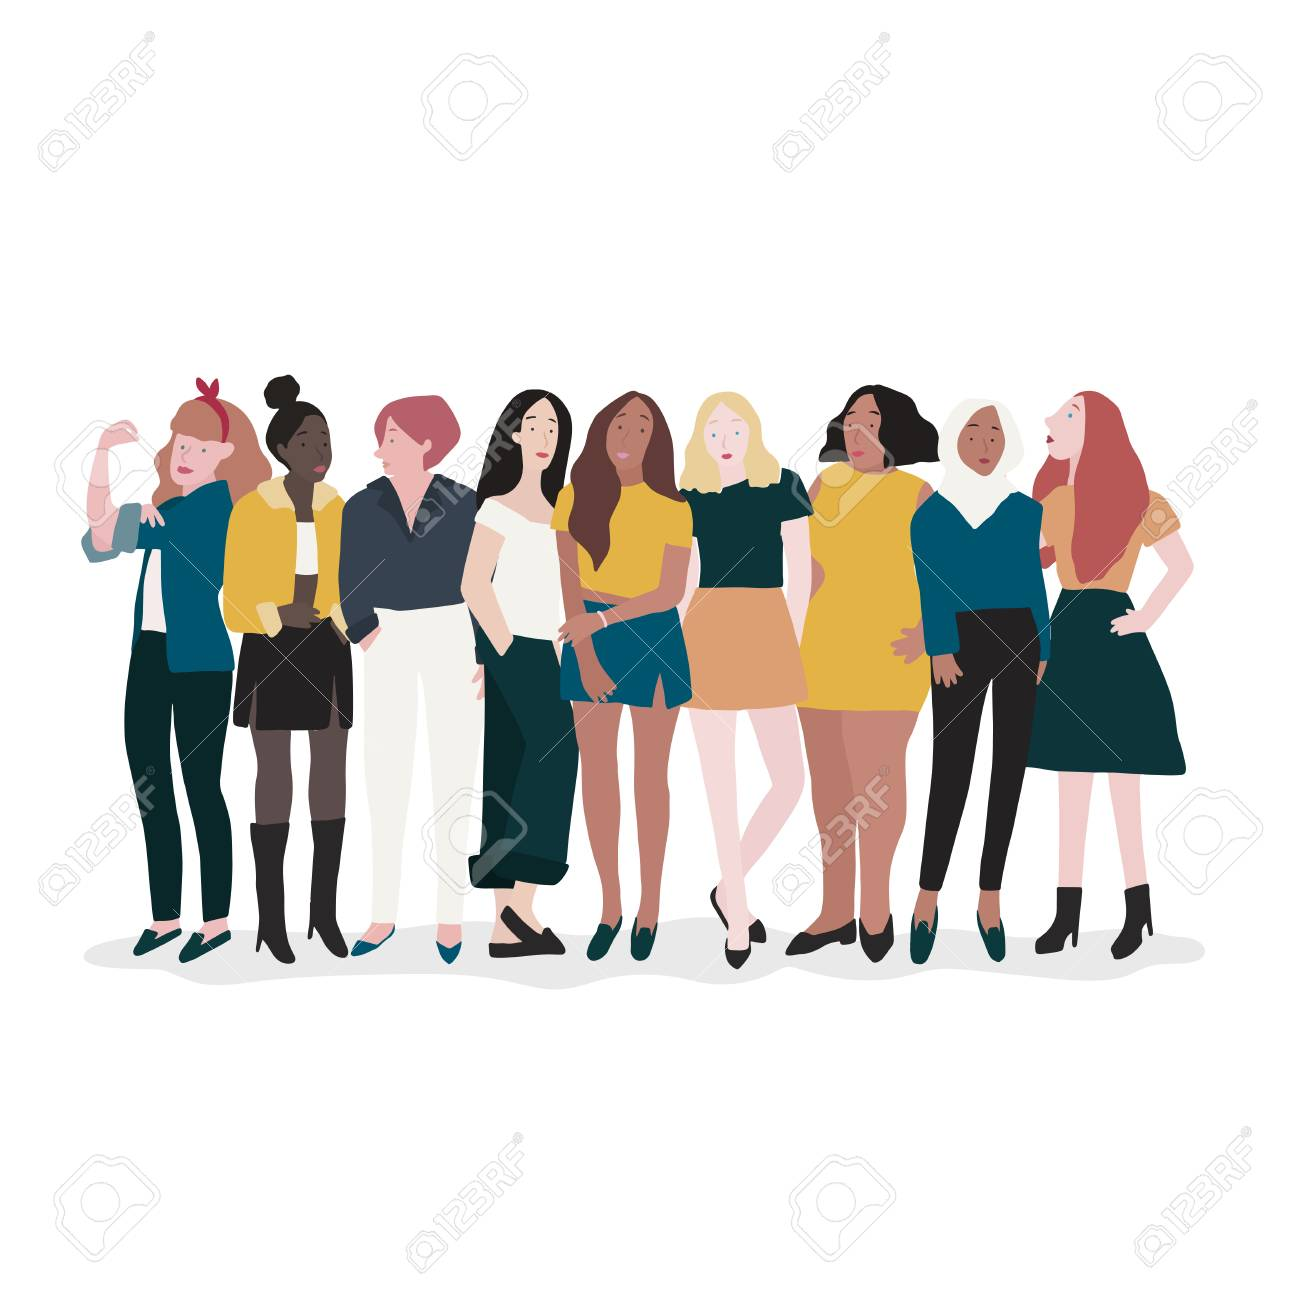 Group of strong women vector - 126453016